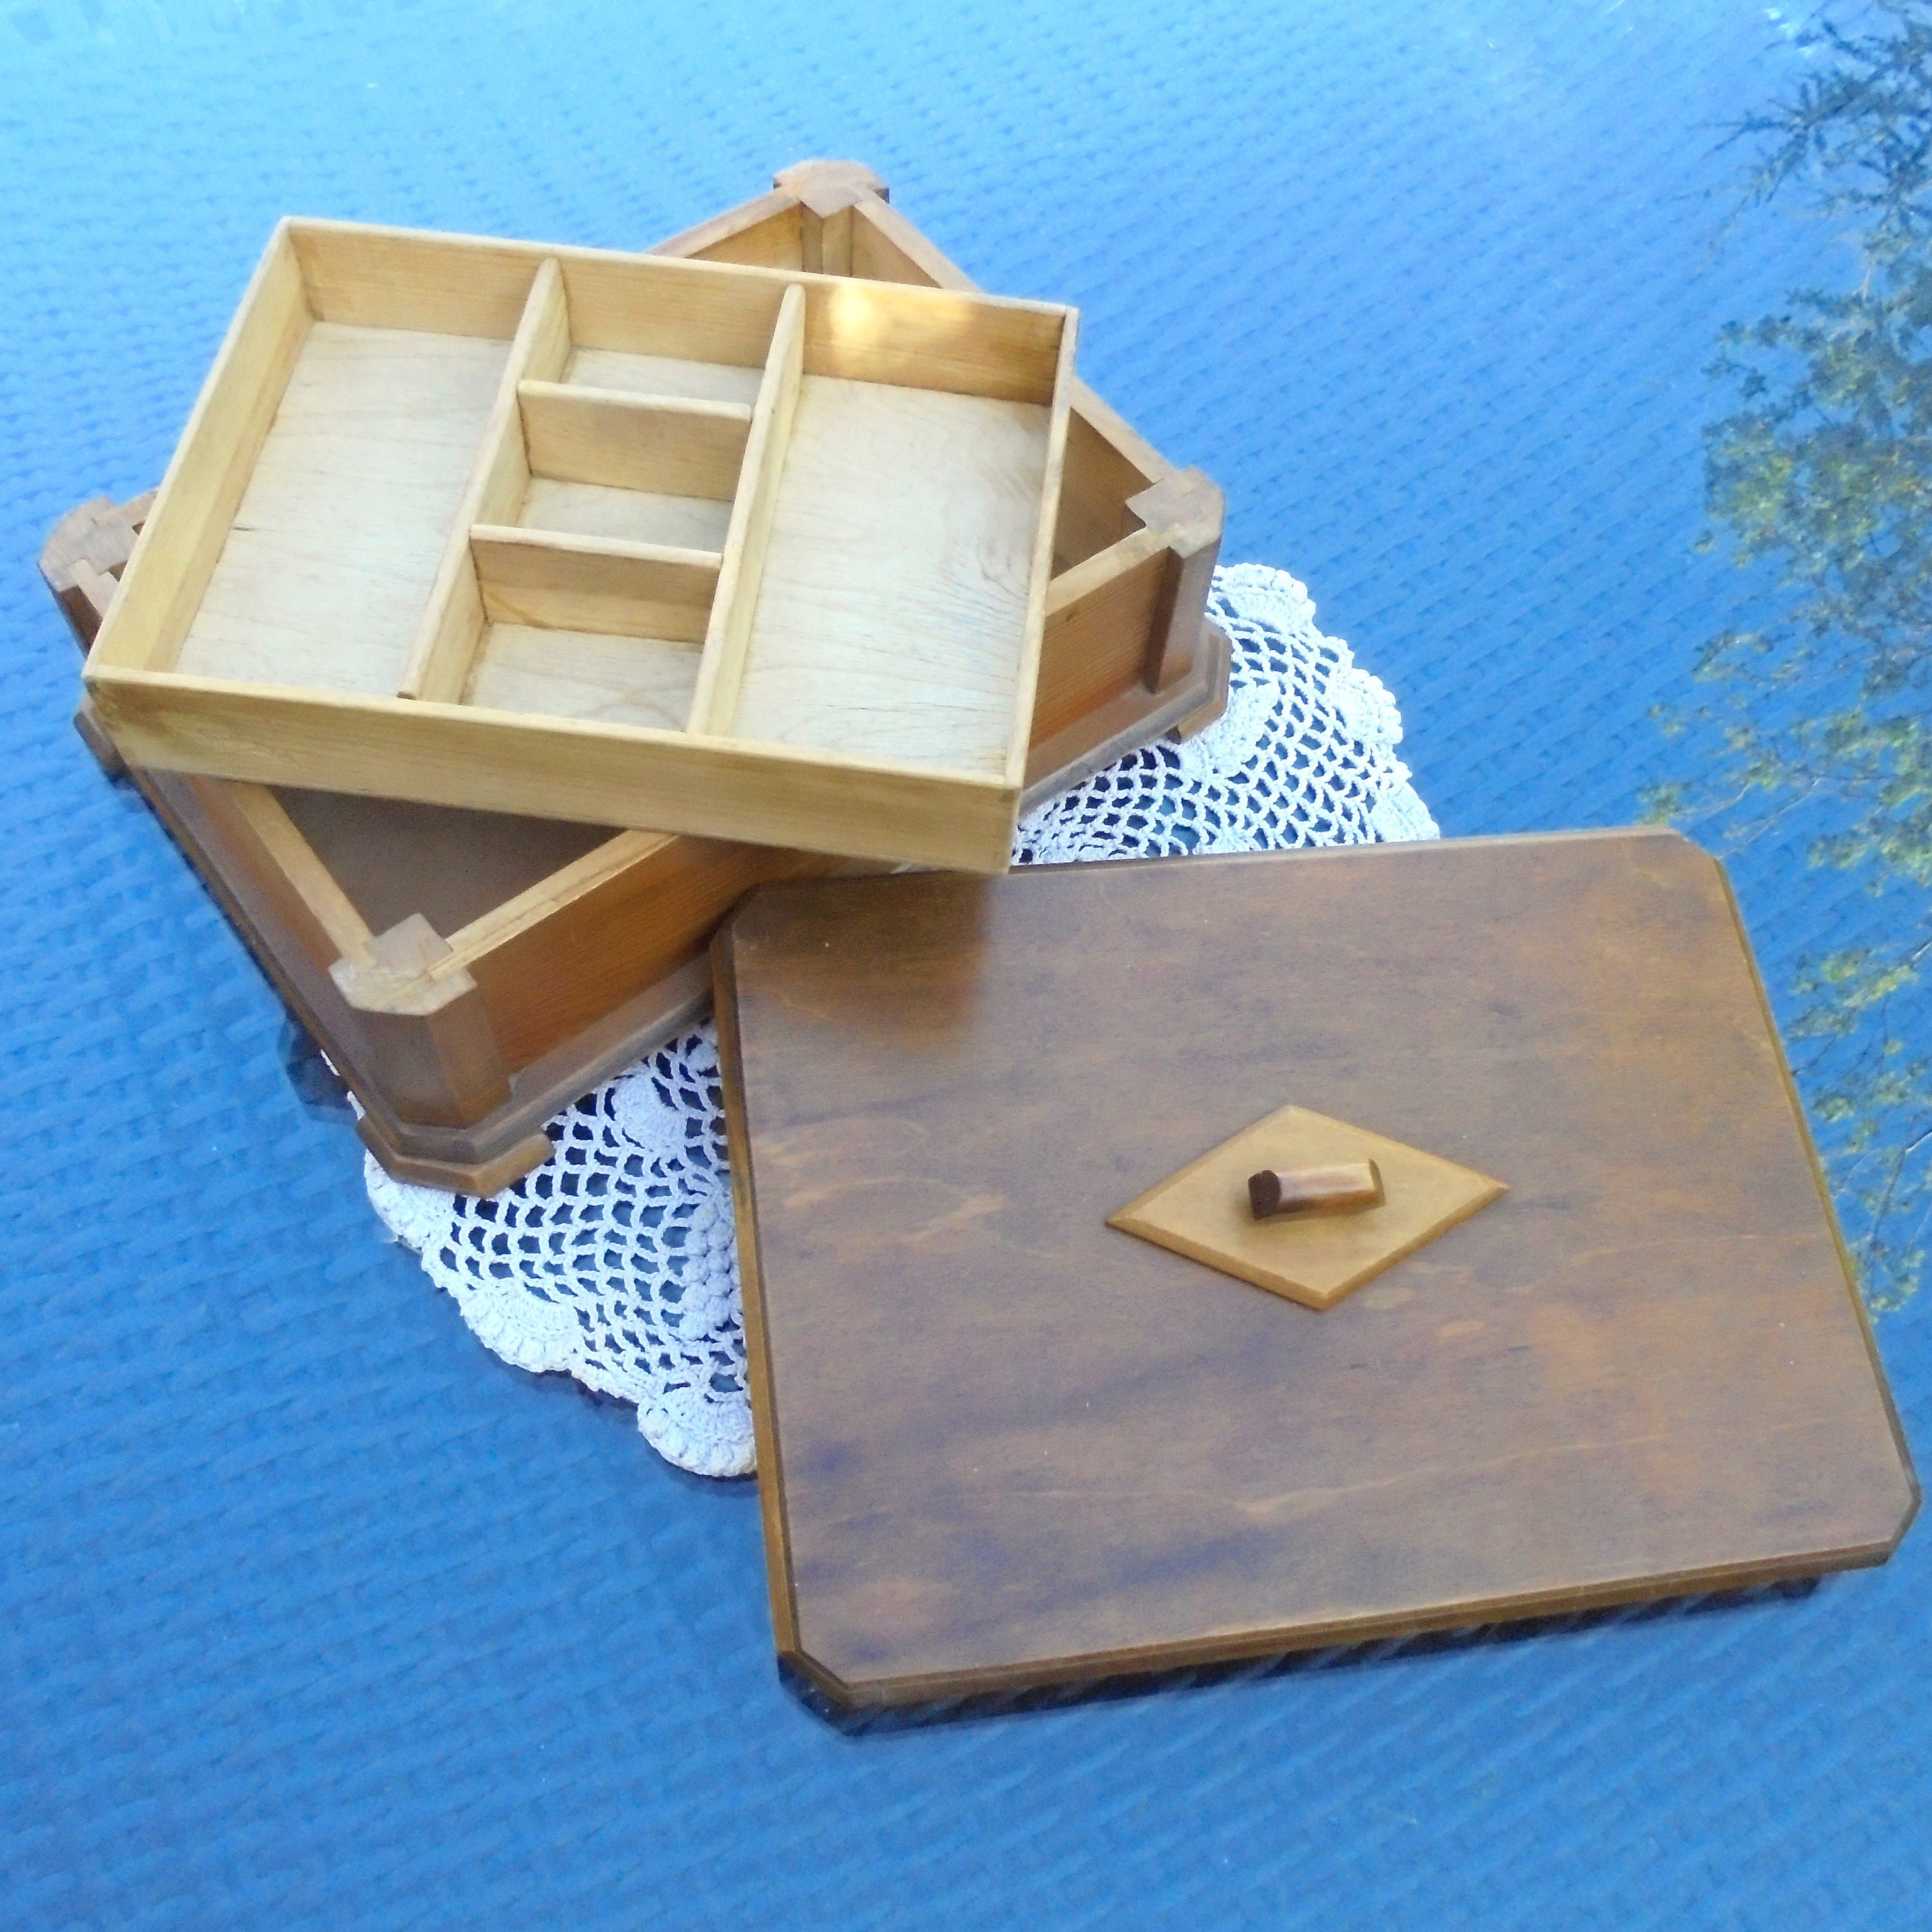 Art Deco Wooden Box with Lift Out Sectioned Tray for All Sorts of Cufflinks Tie Pins Trinkets Nic Nacs Jewellery Treasures Natural Wood